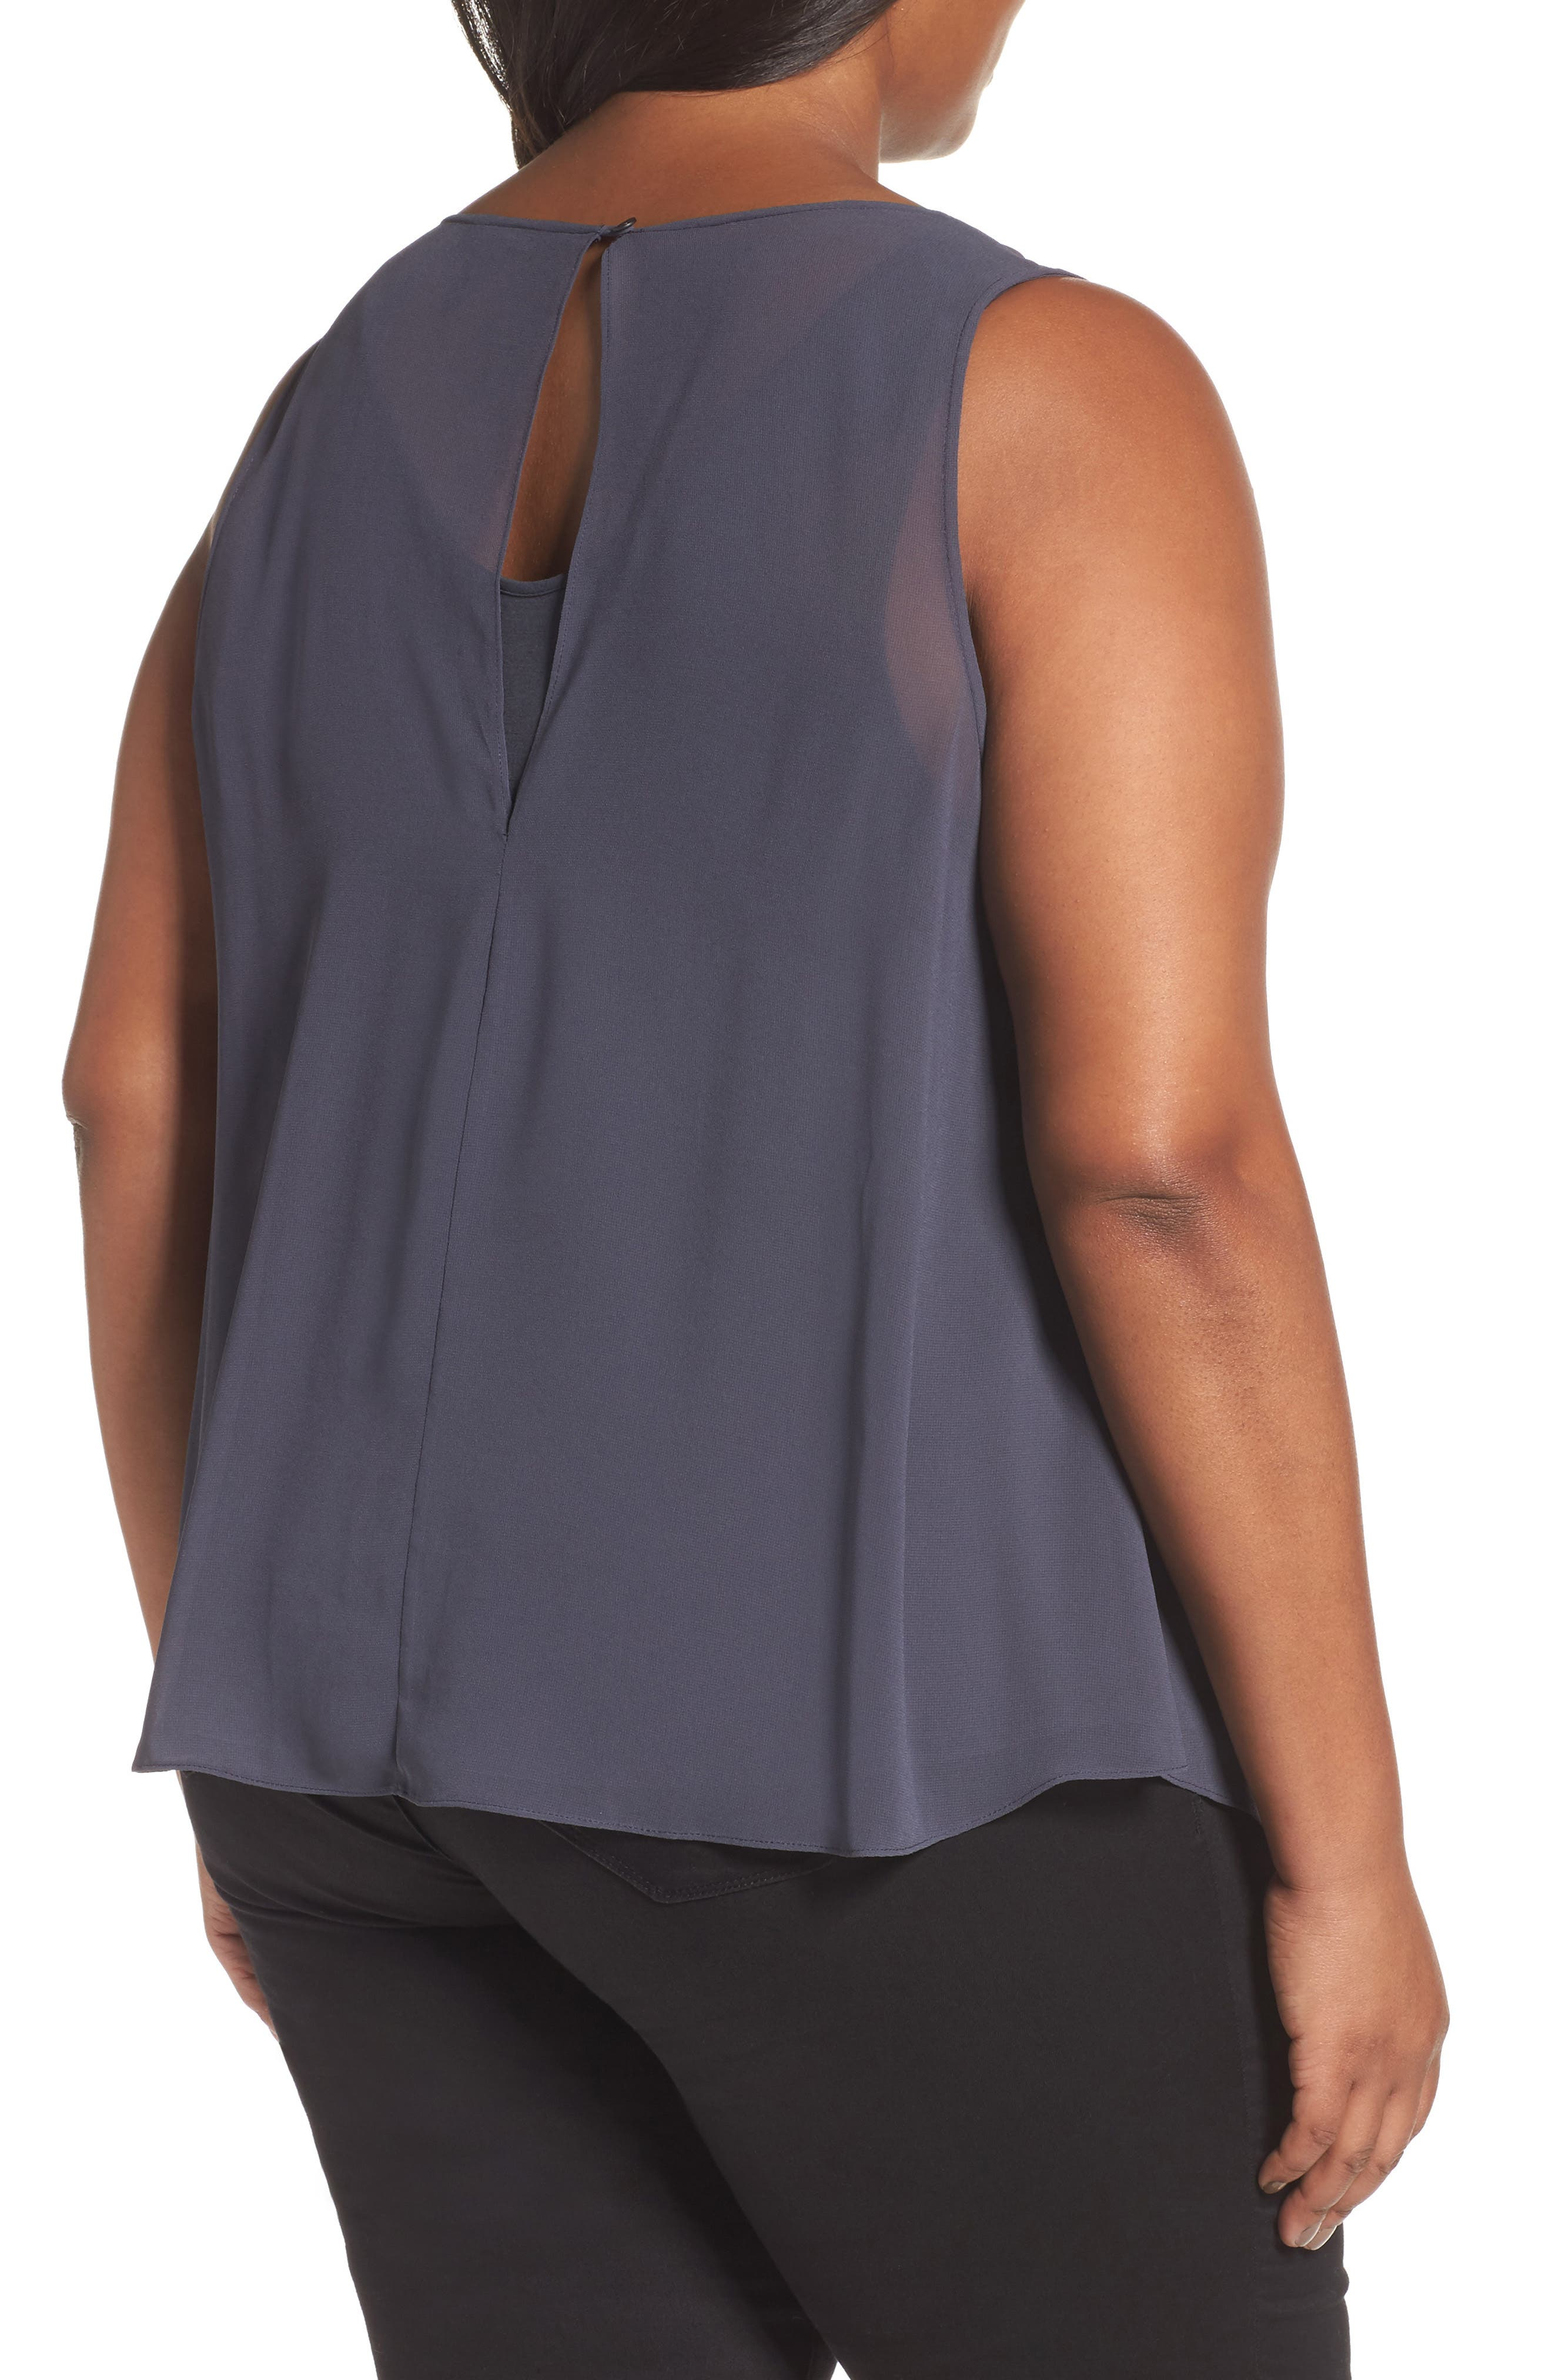 Sheer Collection Top,                             Alternate thumbnail 2, color,                             020